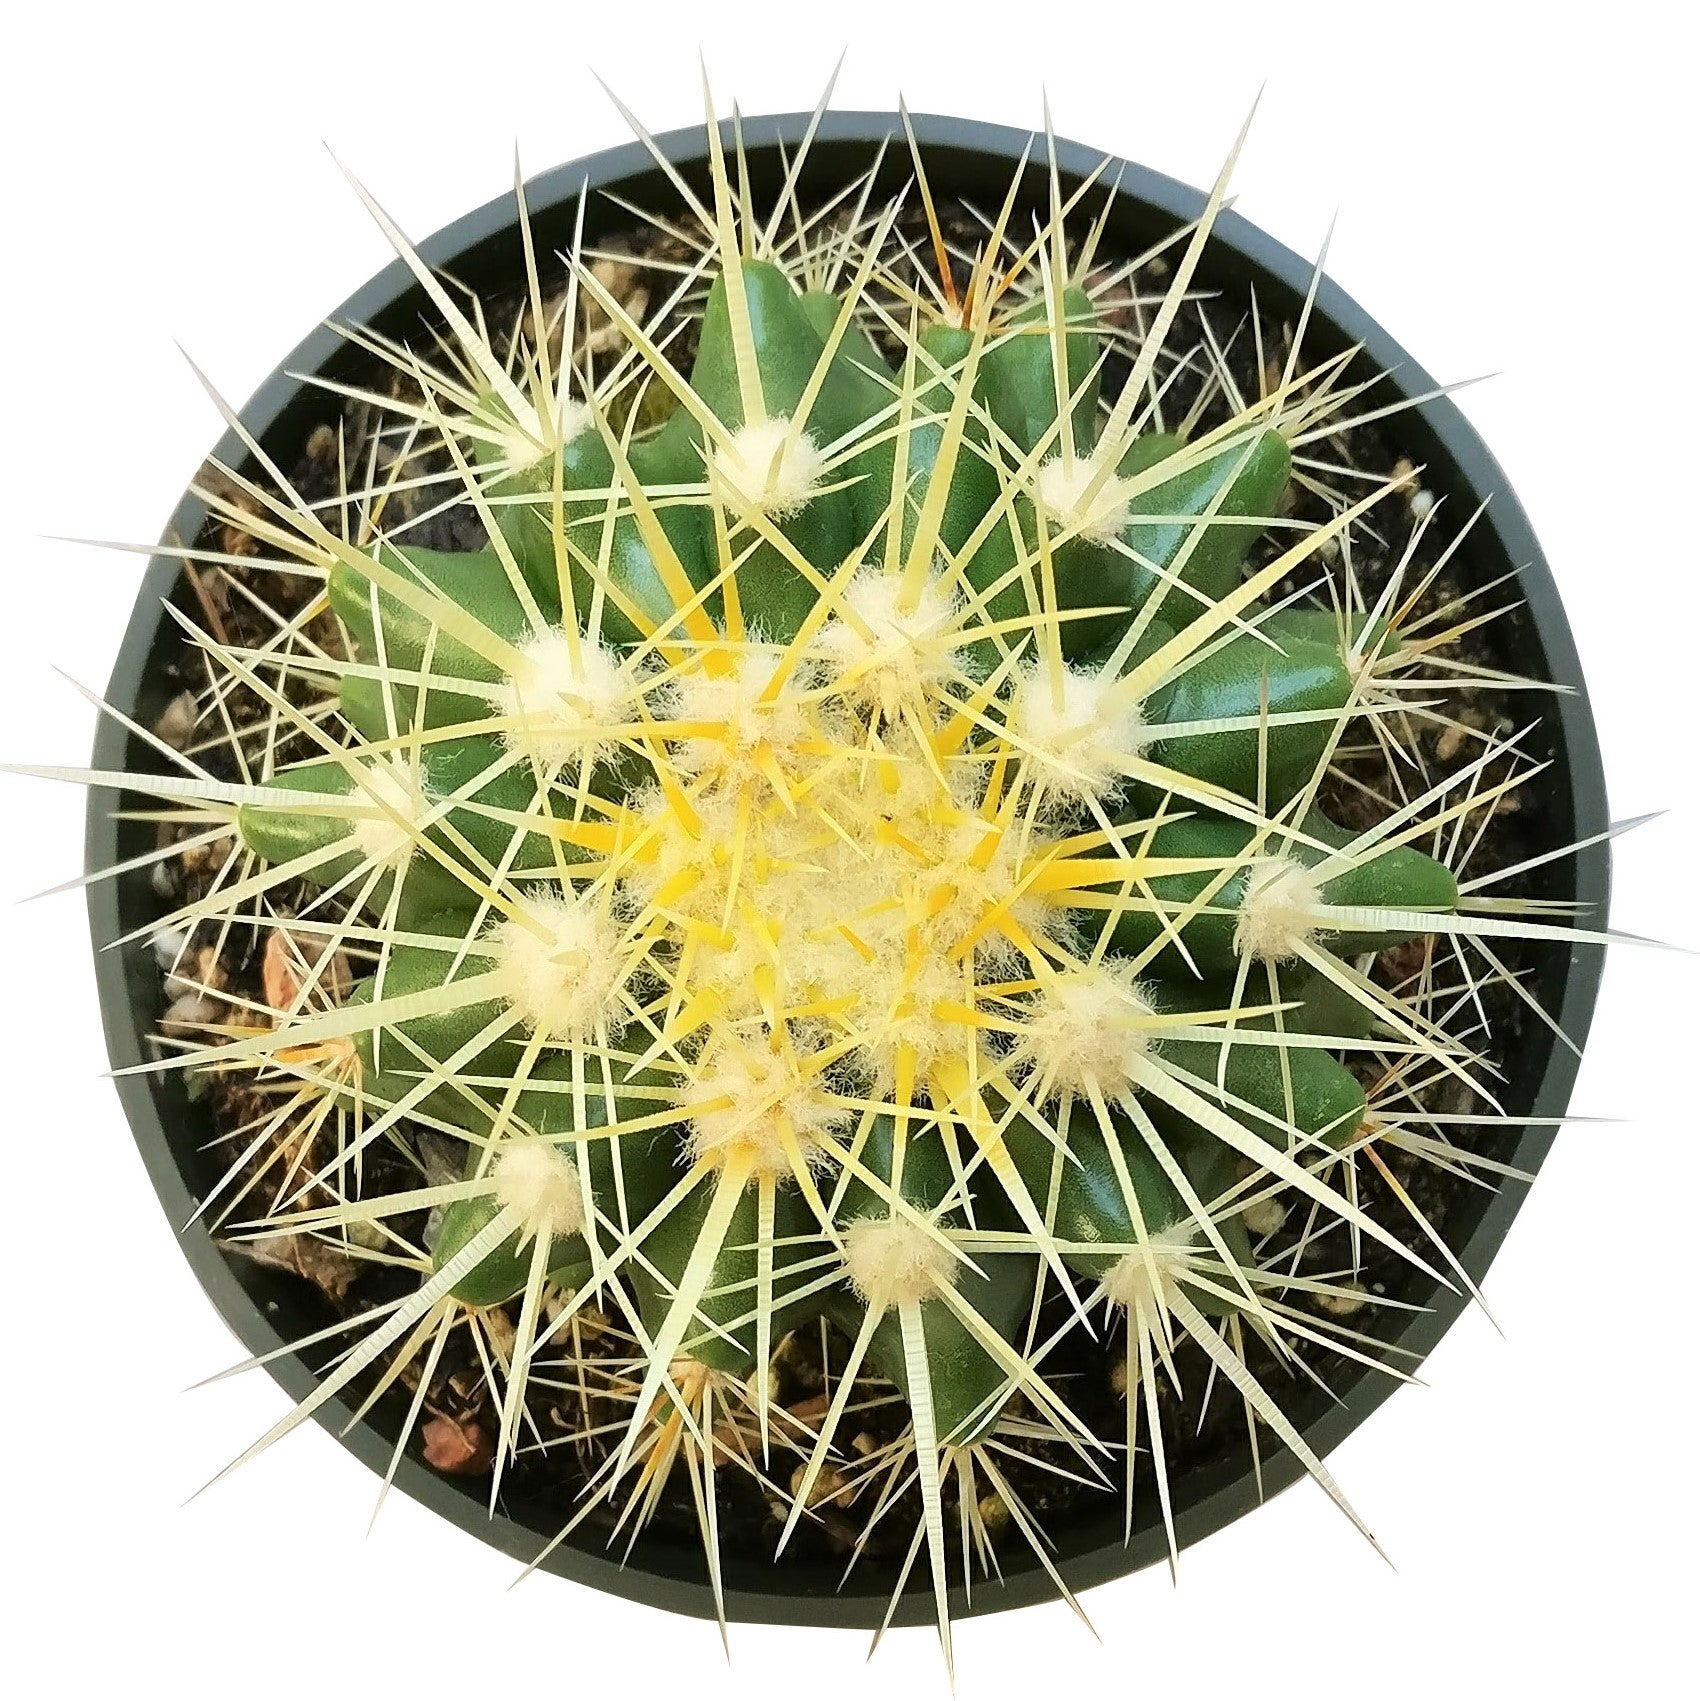 Golden barrel cactus, how to grow Echinocactus grusonii, indoor succulents, succulents garden, succulent subscription, monthly succulents, succulent care guide, succulent care tips, outdoor succulents, Succulents shop near me, how to grow succulents, succulents shop in California